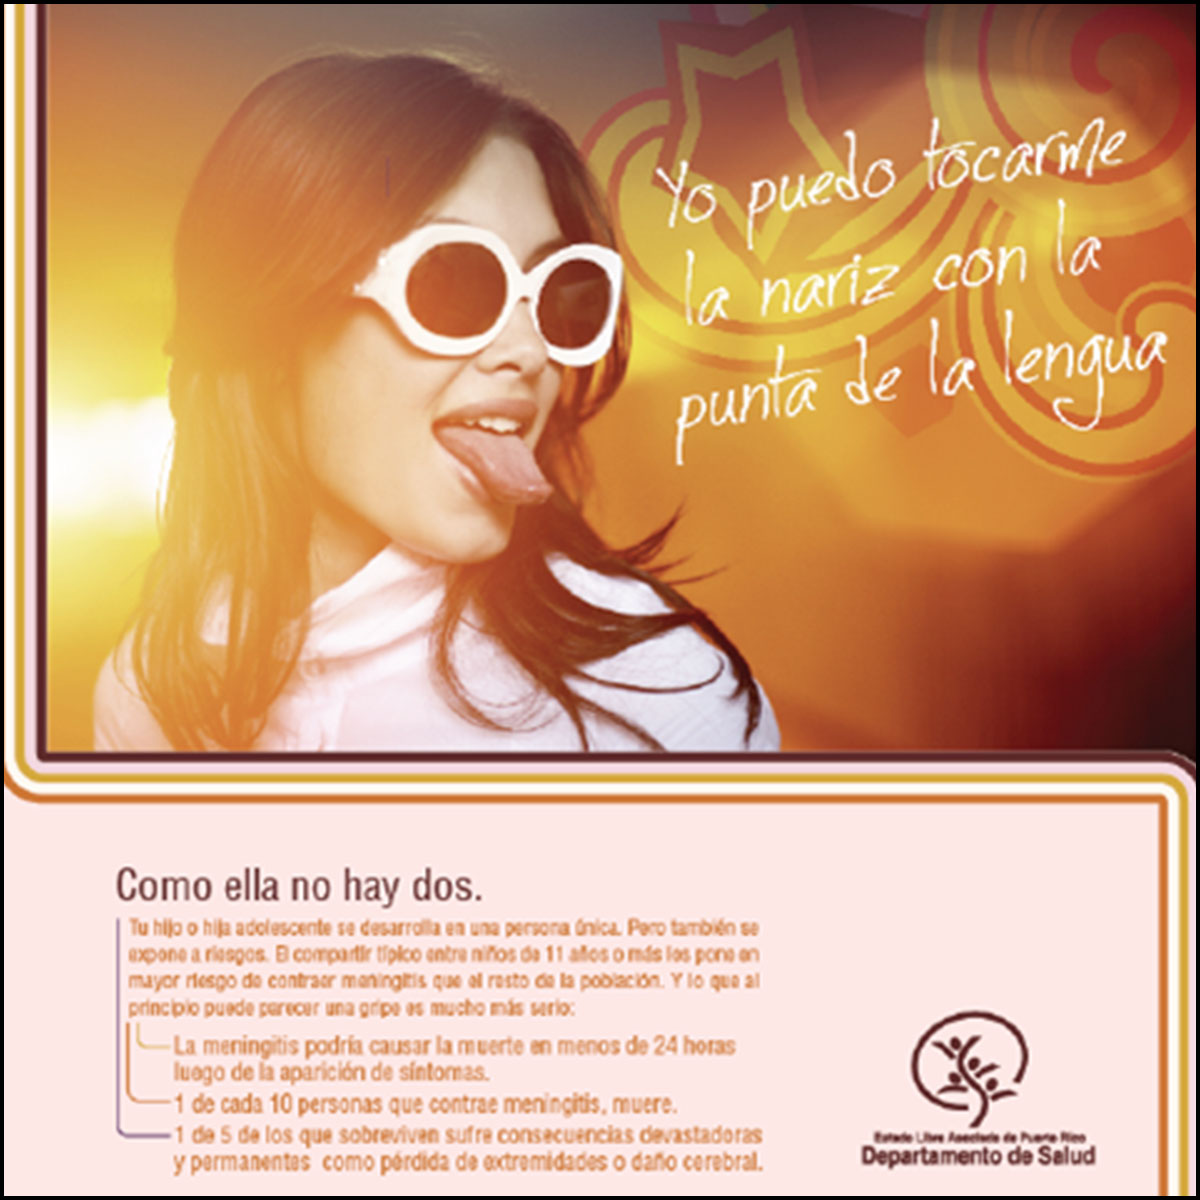 Meningitis Disease Awareness Campaign  Consumer print ad that encouraged adolescent vaccination against meningitis in Puerto Rico.